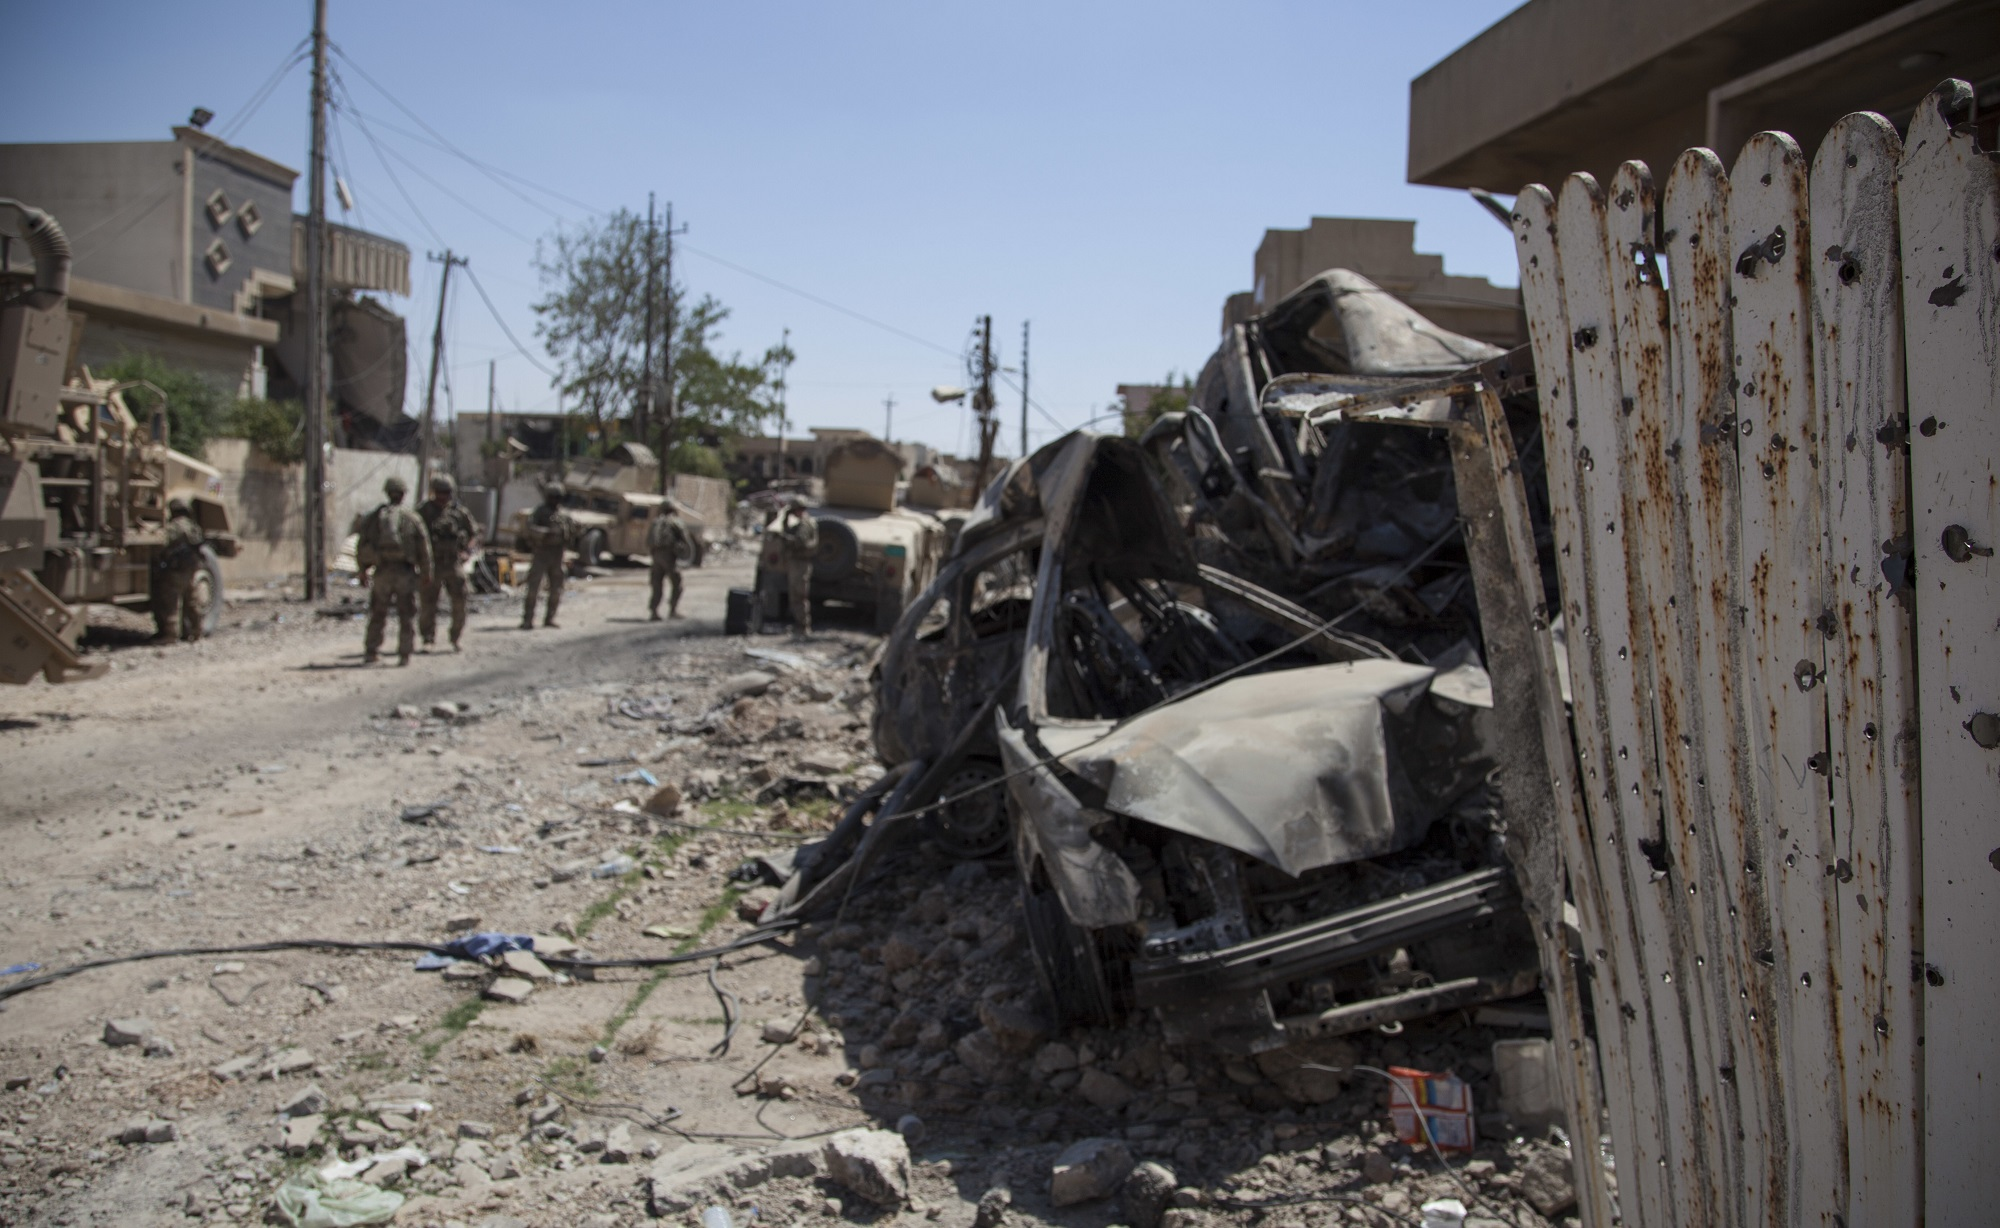 Iraq declared victory over ISIS. But the fight isn't over.